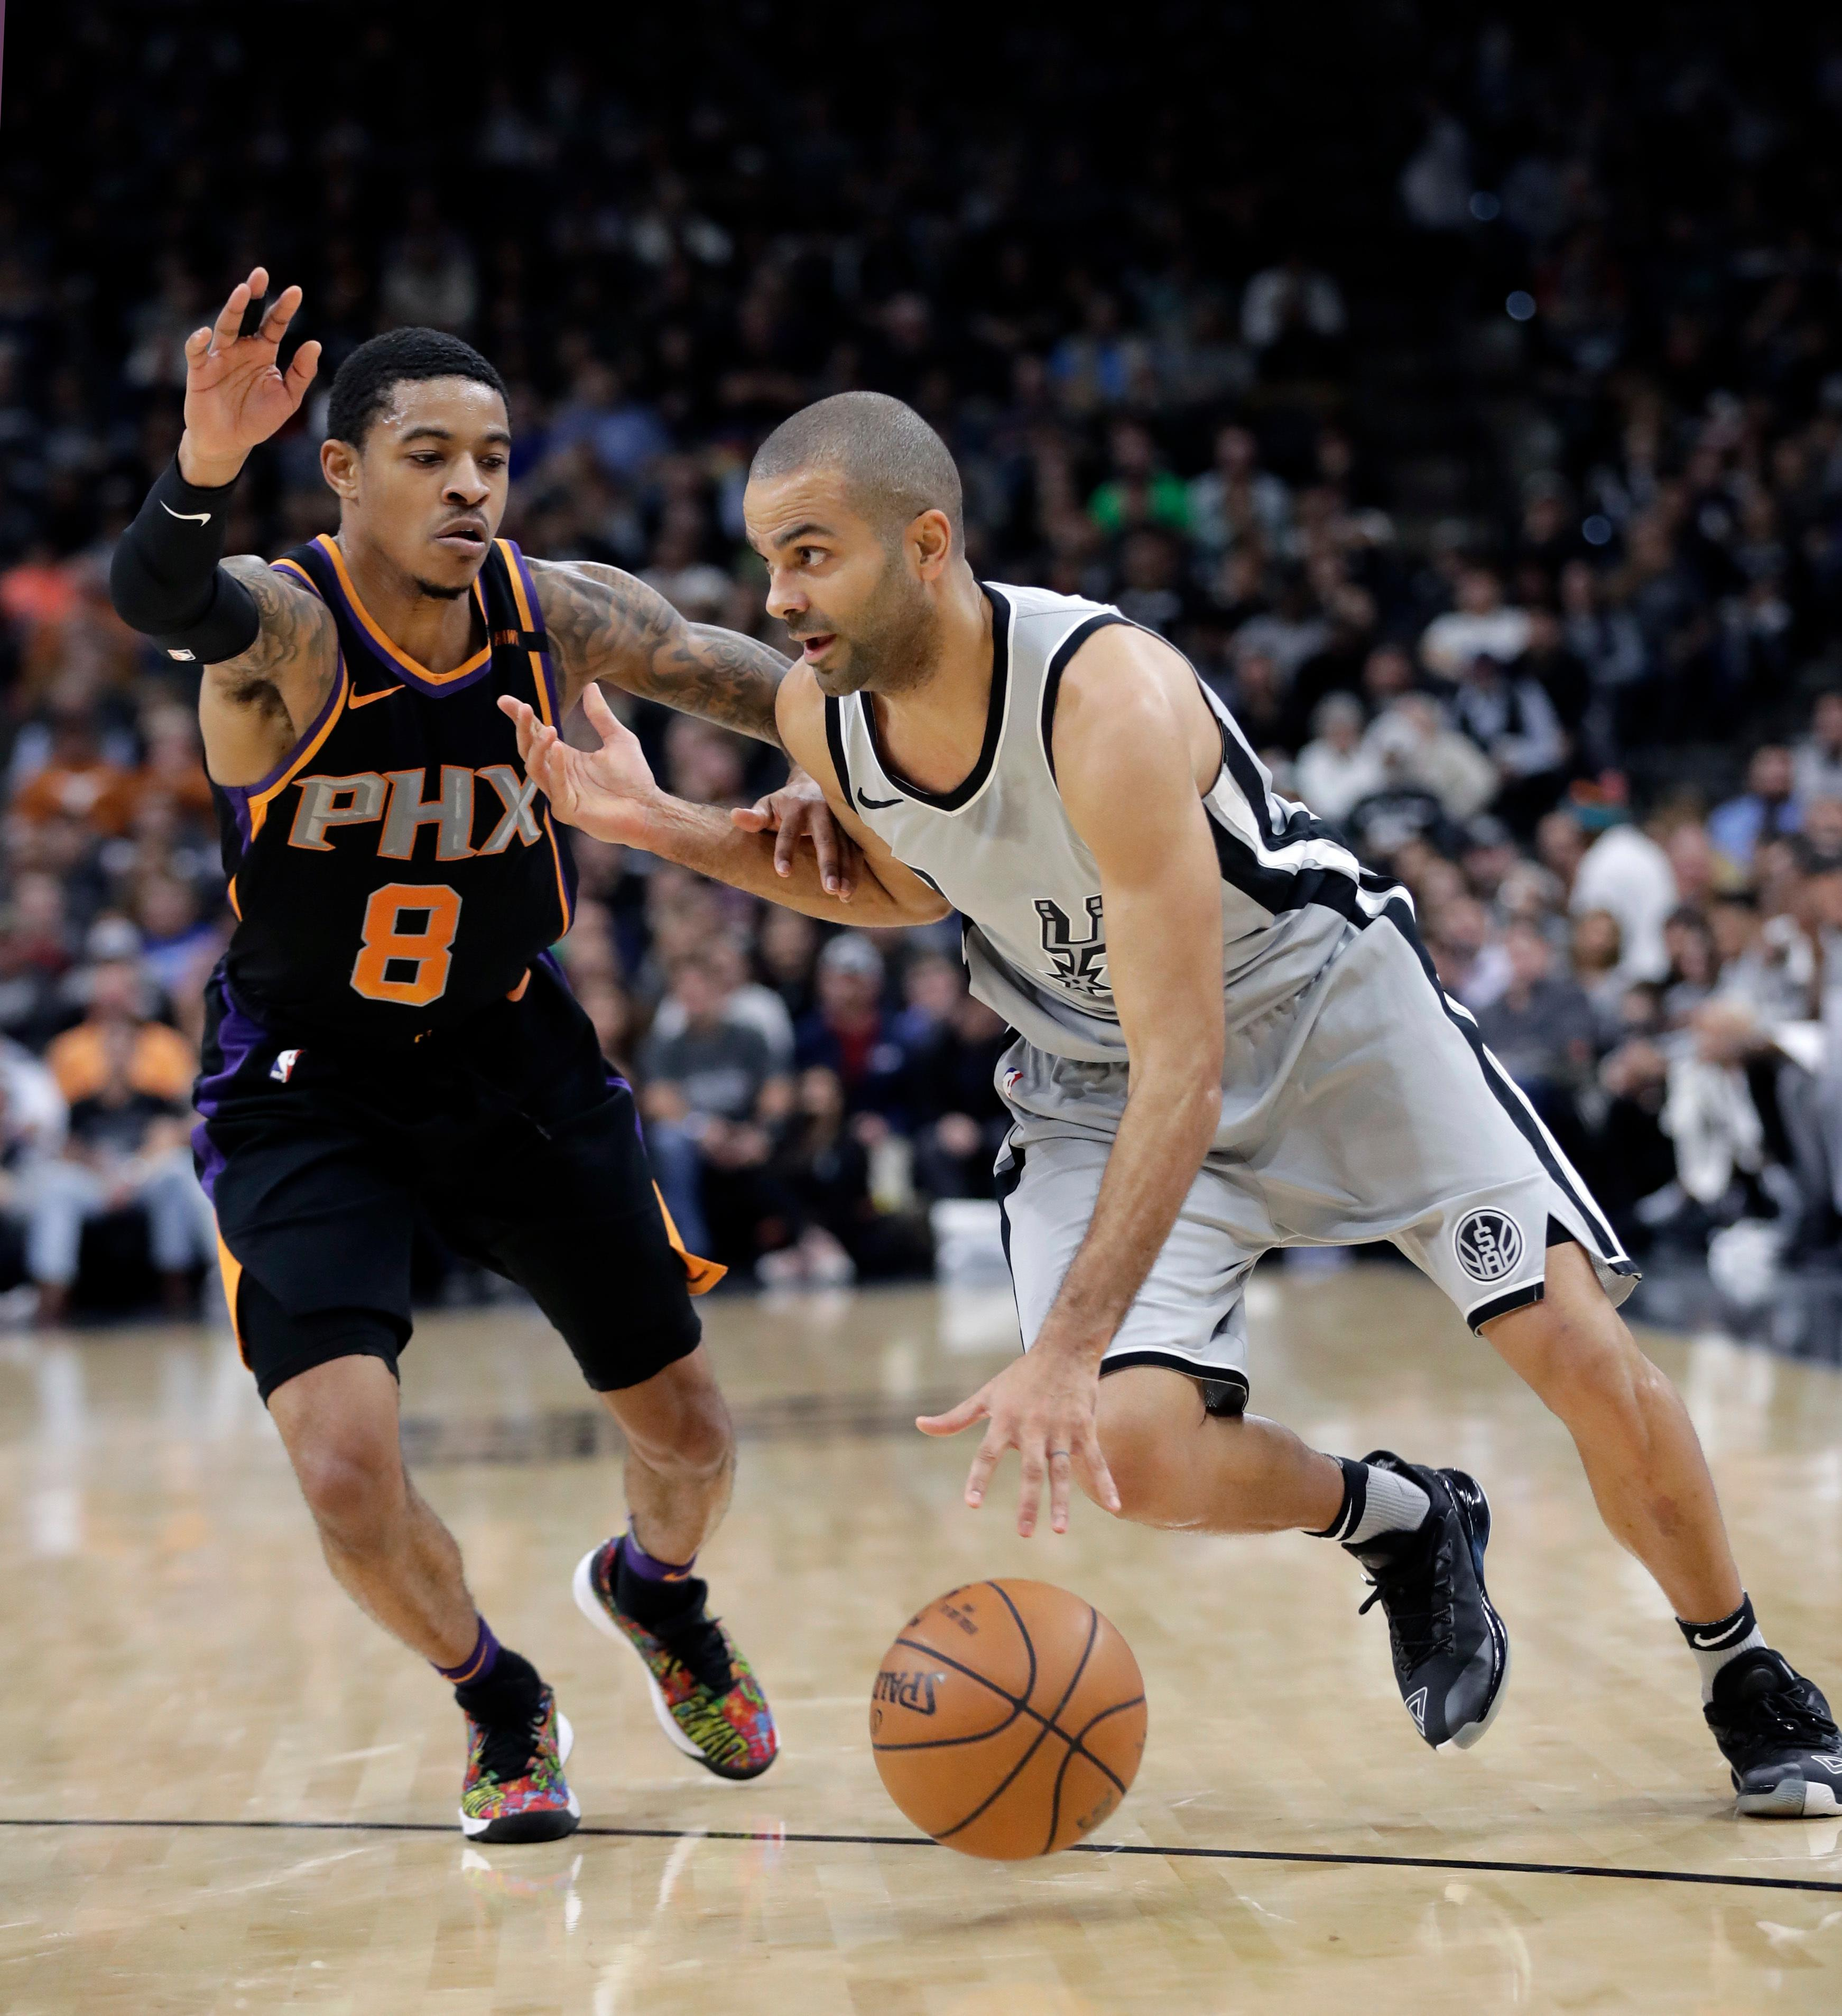 San Antonio Spurs guard Tony Parker (9) drives around Phoenix Suns guard Tyler Ulis (8) during the first half of an NBA basketball game Friday, Jan. 5, 2018, in San Antonio. (AP Photo/Eric Gay)